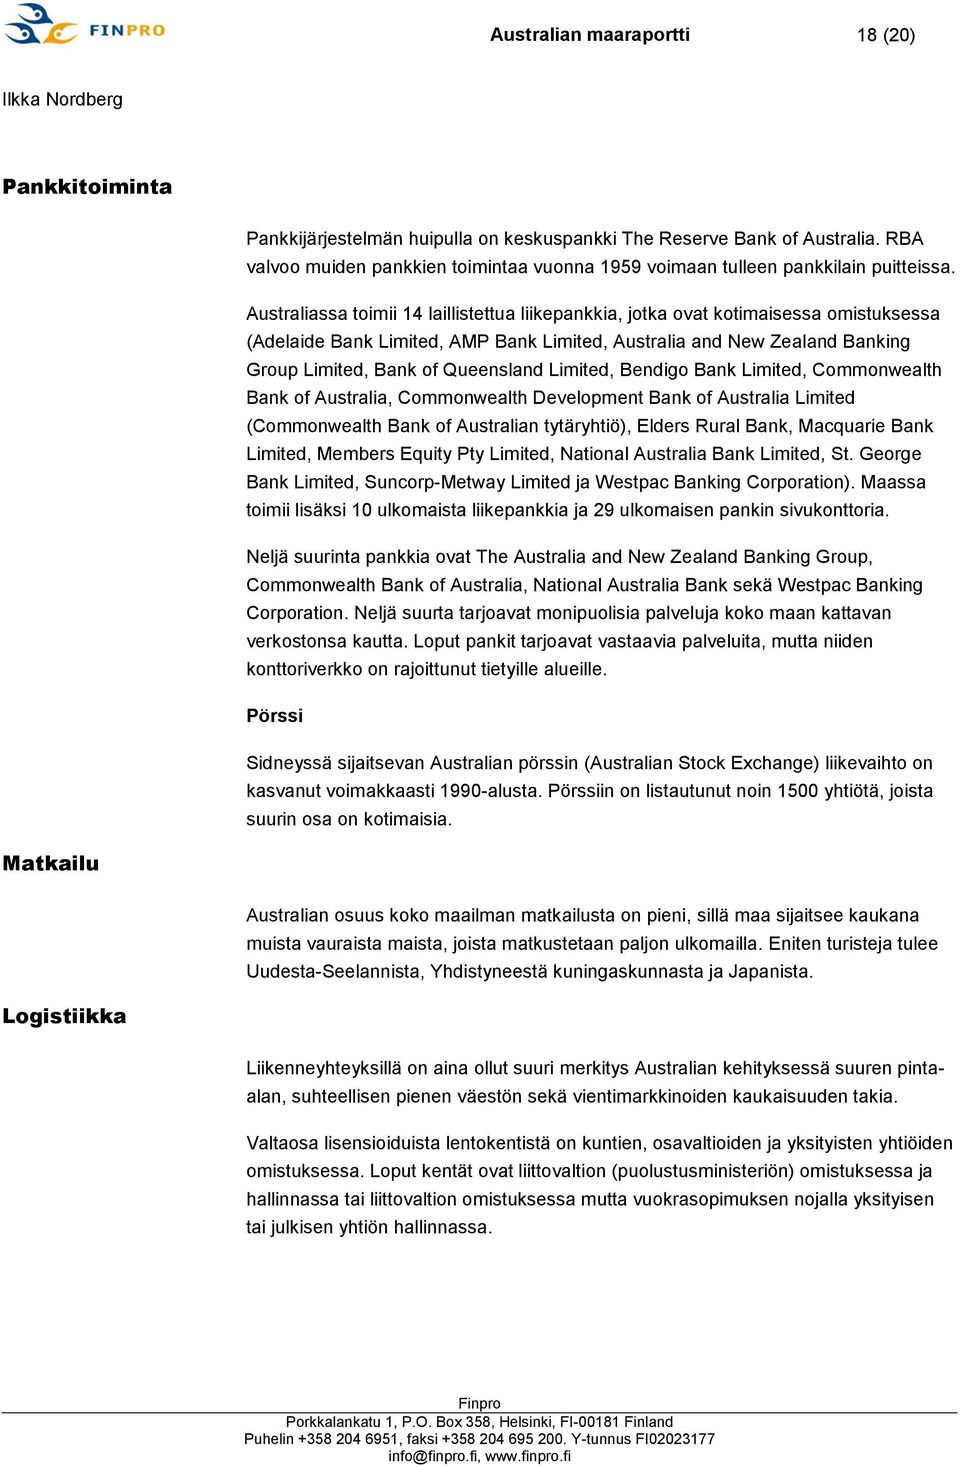 Australiassa toimii 14 laillistettua liikepankkia, jotka ovat kotimaisessa omistuksessa (Adelaide Bank Limited, AMP Bank Limited, Australia and New Zealand Banking Group Limited, Bank of Queensland